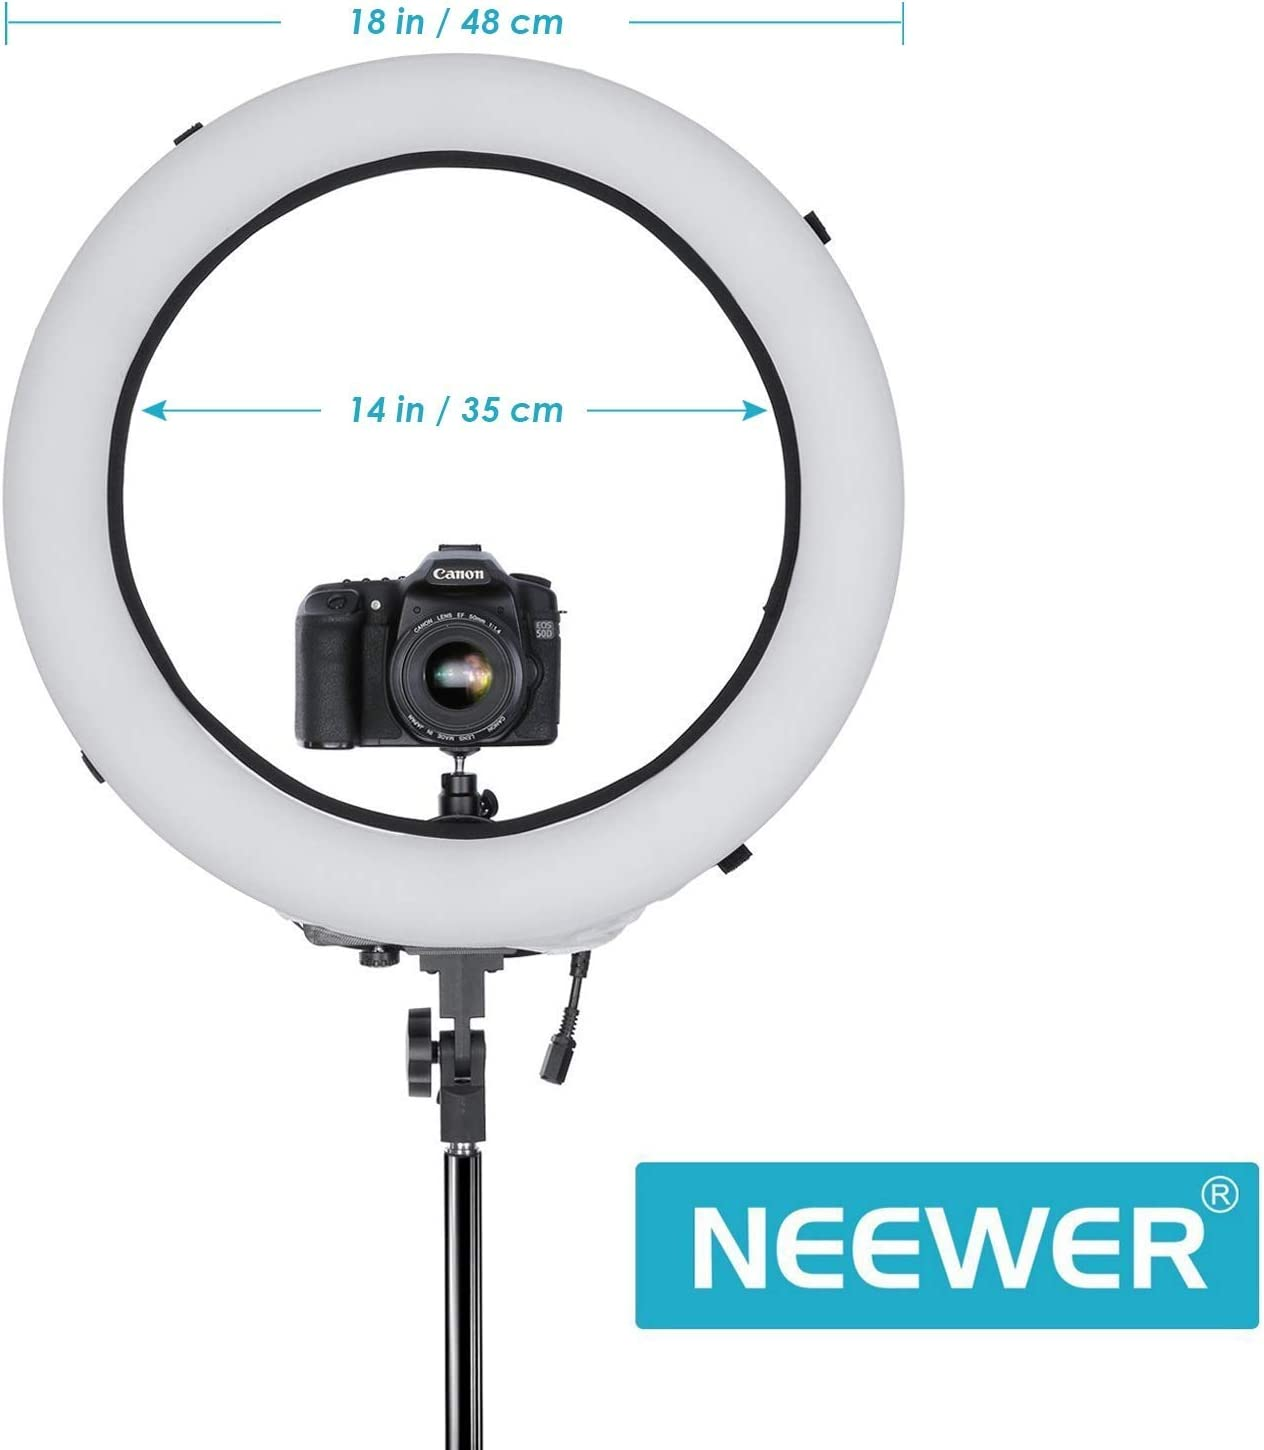 Stand Makeup Selfie Light Neewer Ring Light with Stand Kit: 18-inch Outer 55W Dimmable LED Ring Light with Soft Diffuser Filter Phone Holder and Carrying Bag for YouTube Video etc Soft Tube